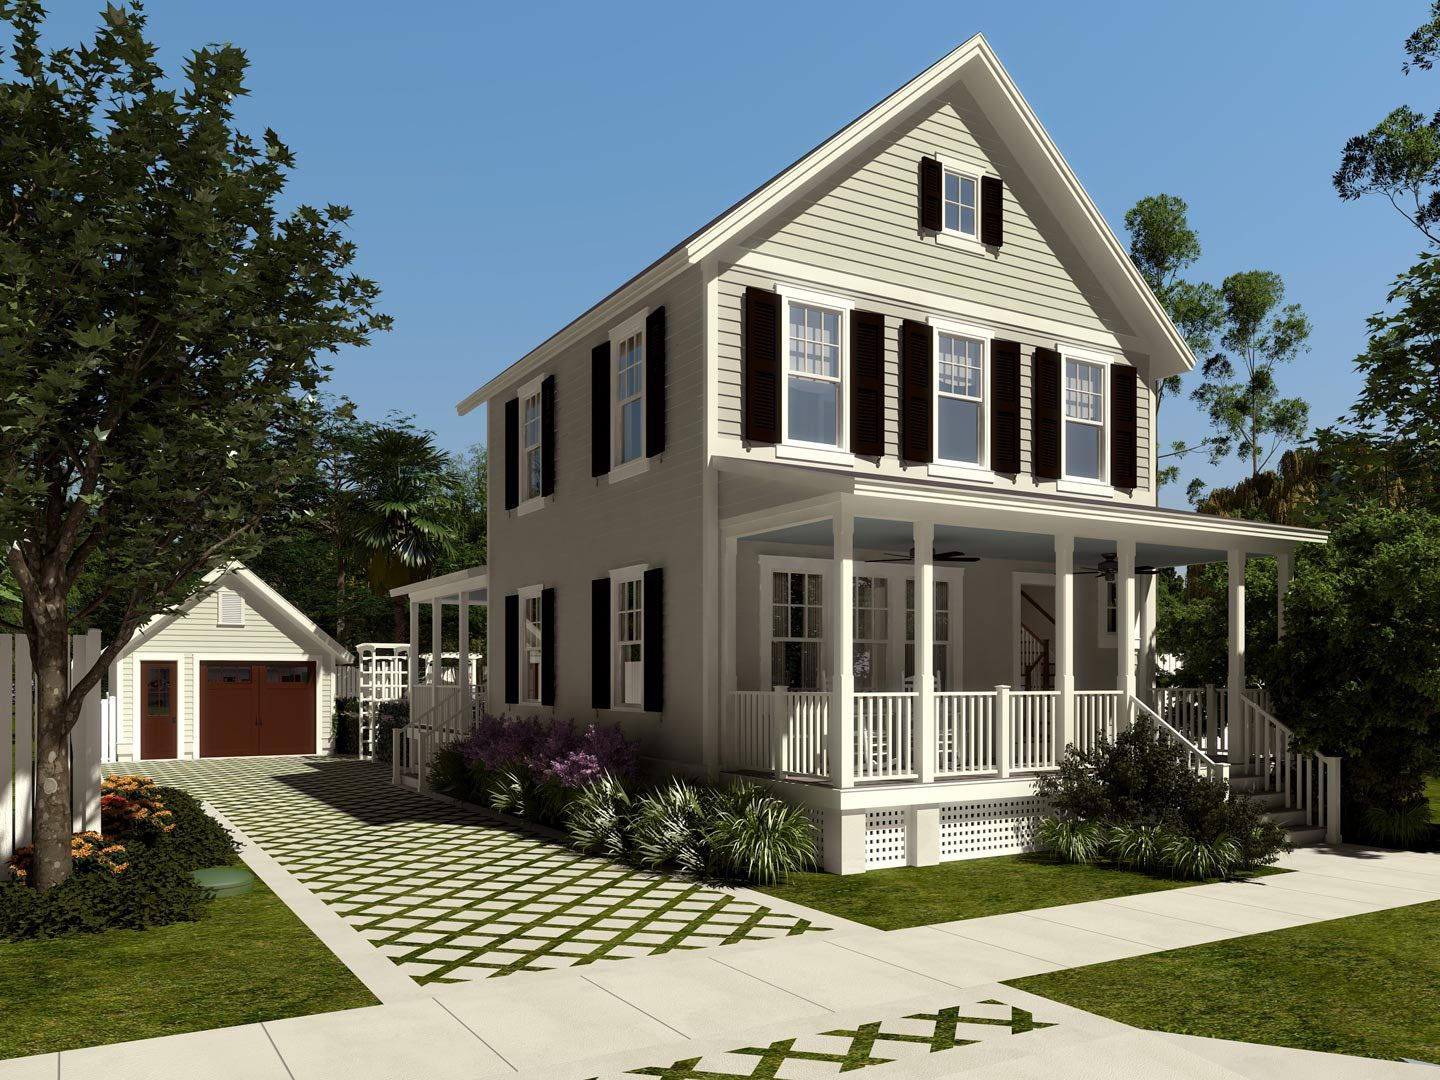 Old Ideas in New Home Construction | Victorian house plans ...